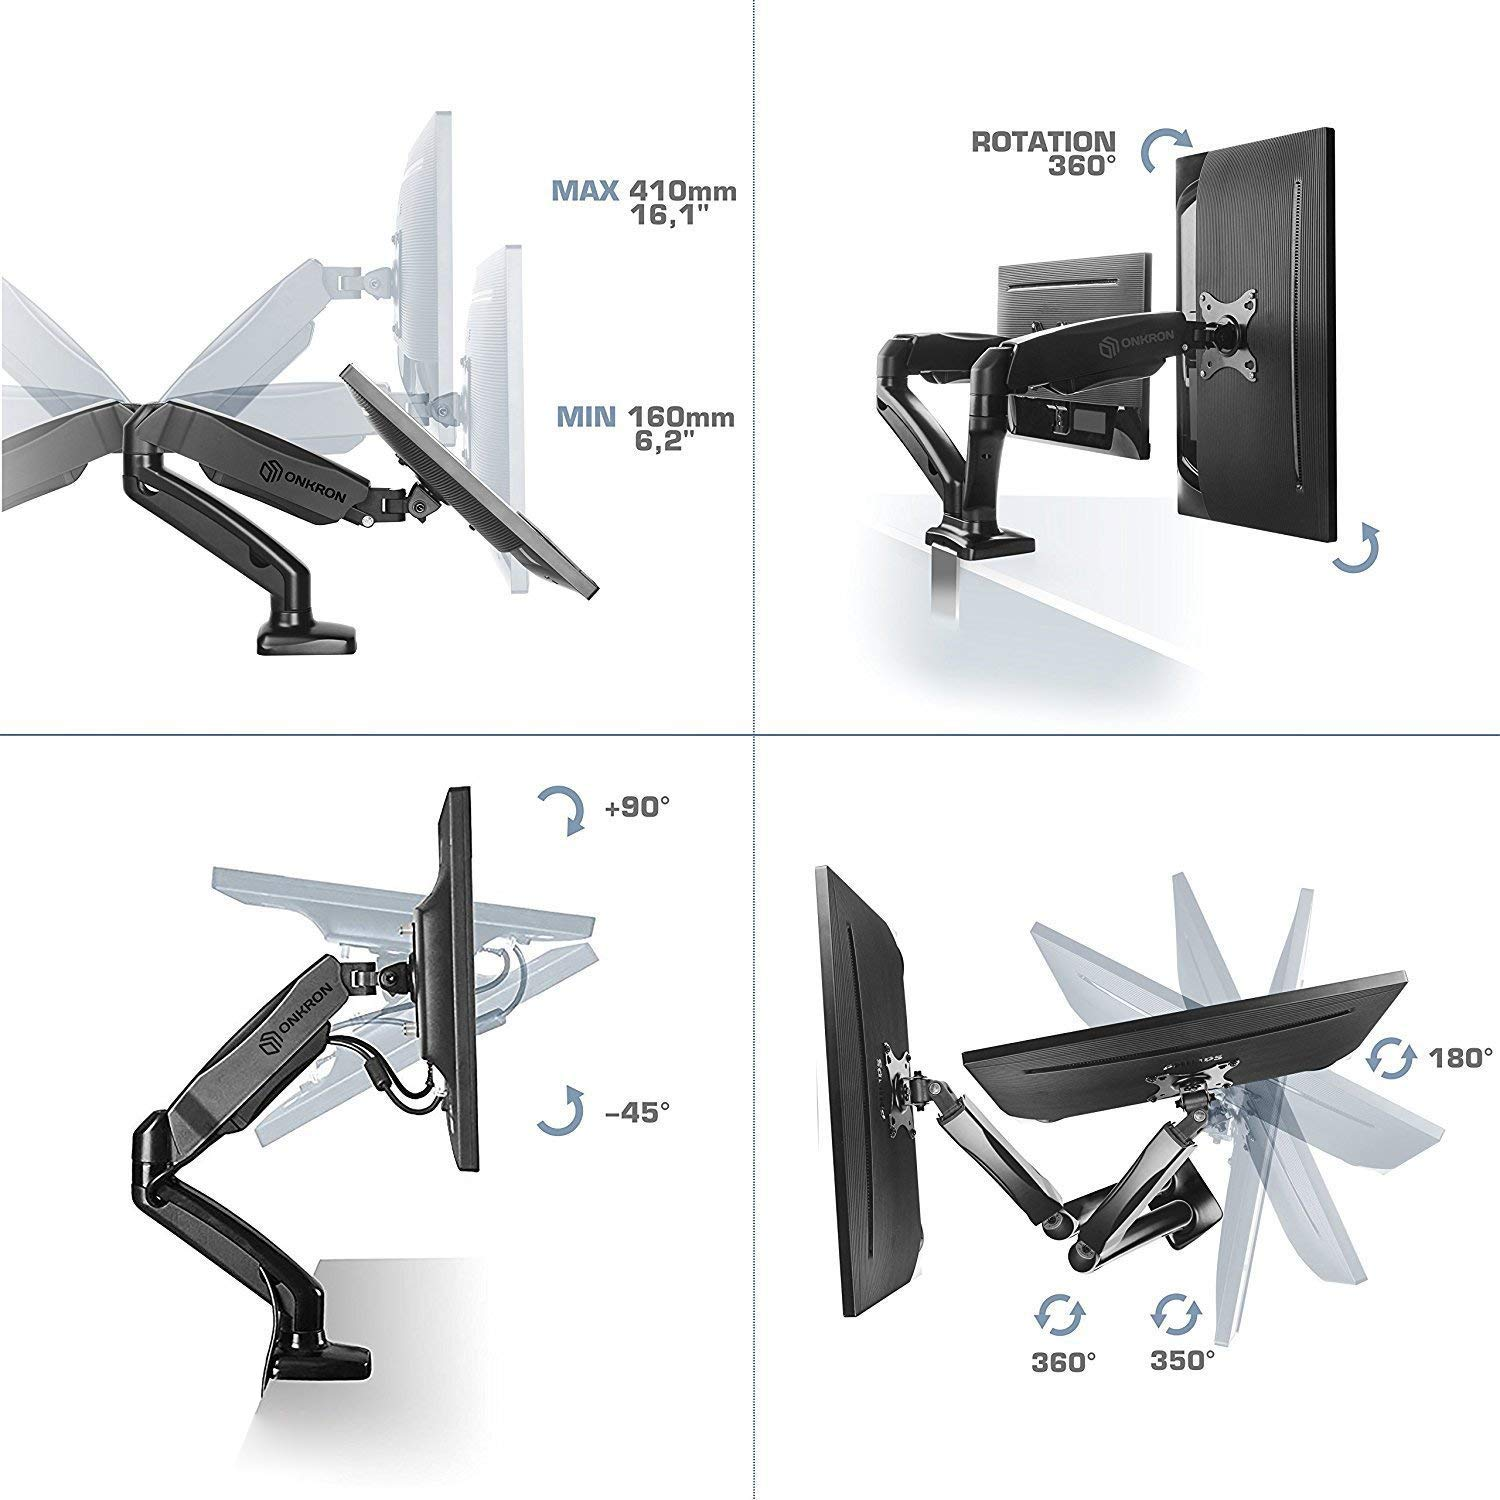 ONKRON Dual Monitor Desk Mount for 13 to 27-Inch LCD LED Computer TV Screens up to 14.3 lbs G160 by ONKRON (Image #4)